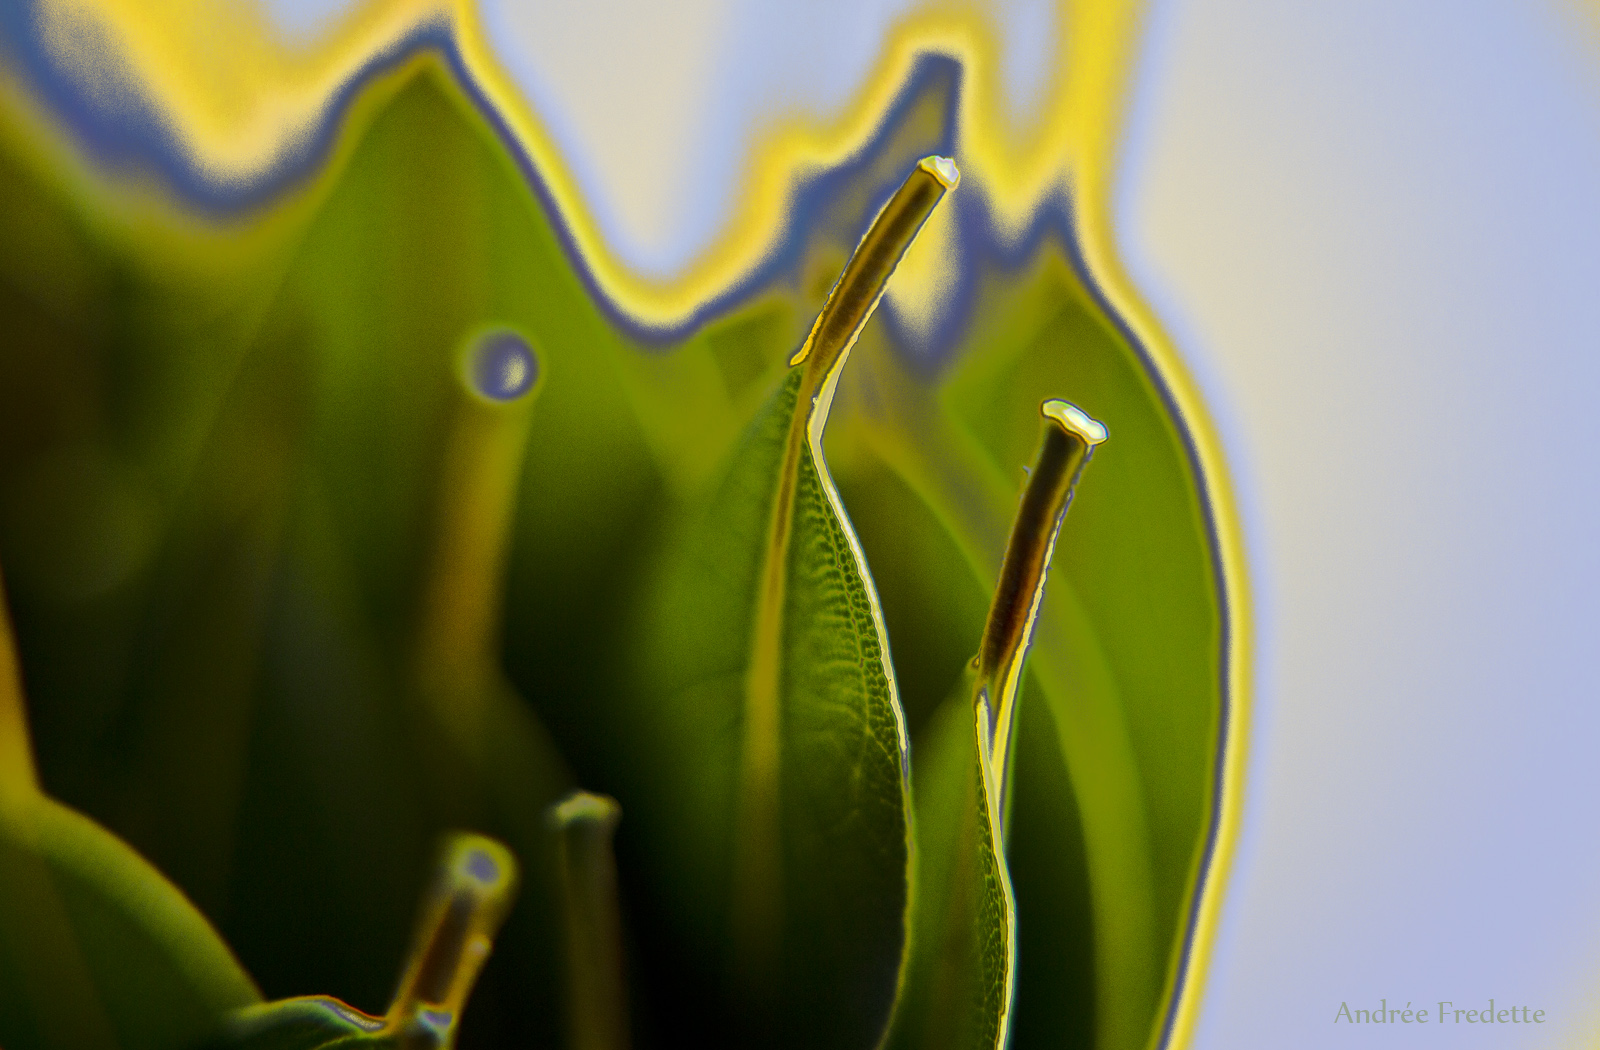 Laurel Leaf Edges. Almost abstract, photo by Andrée Fredette